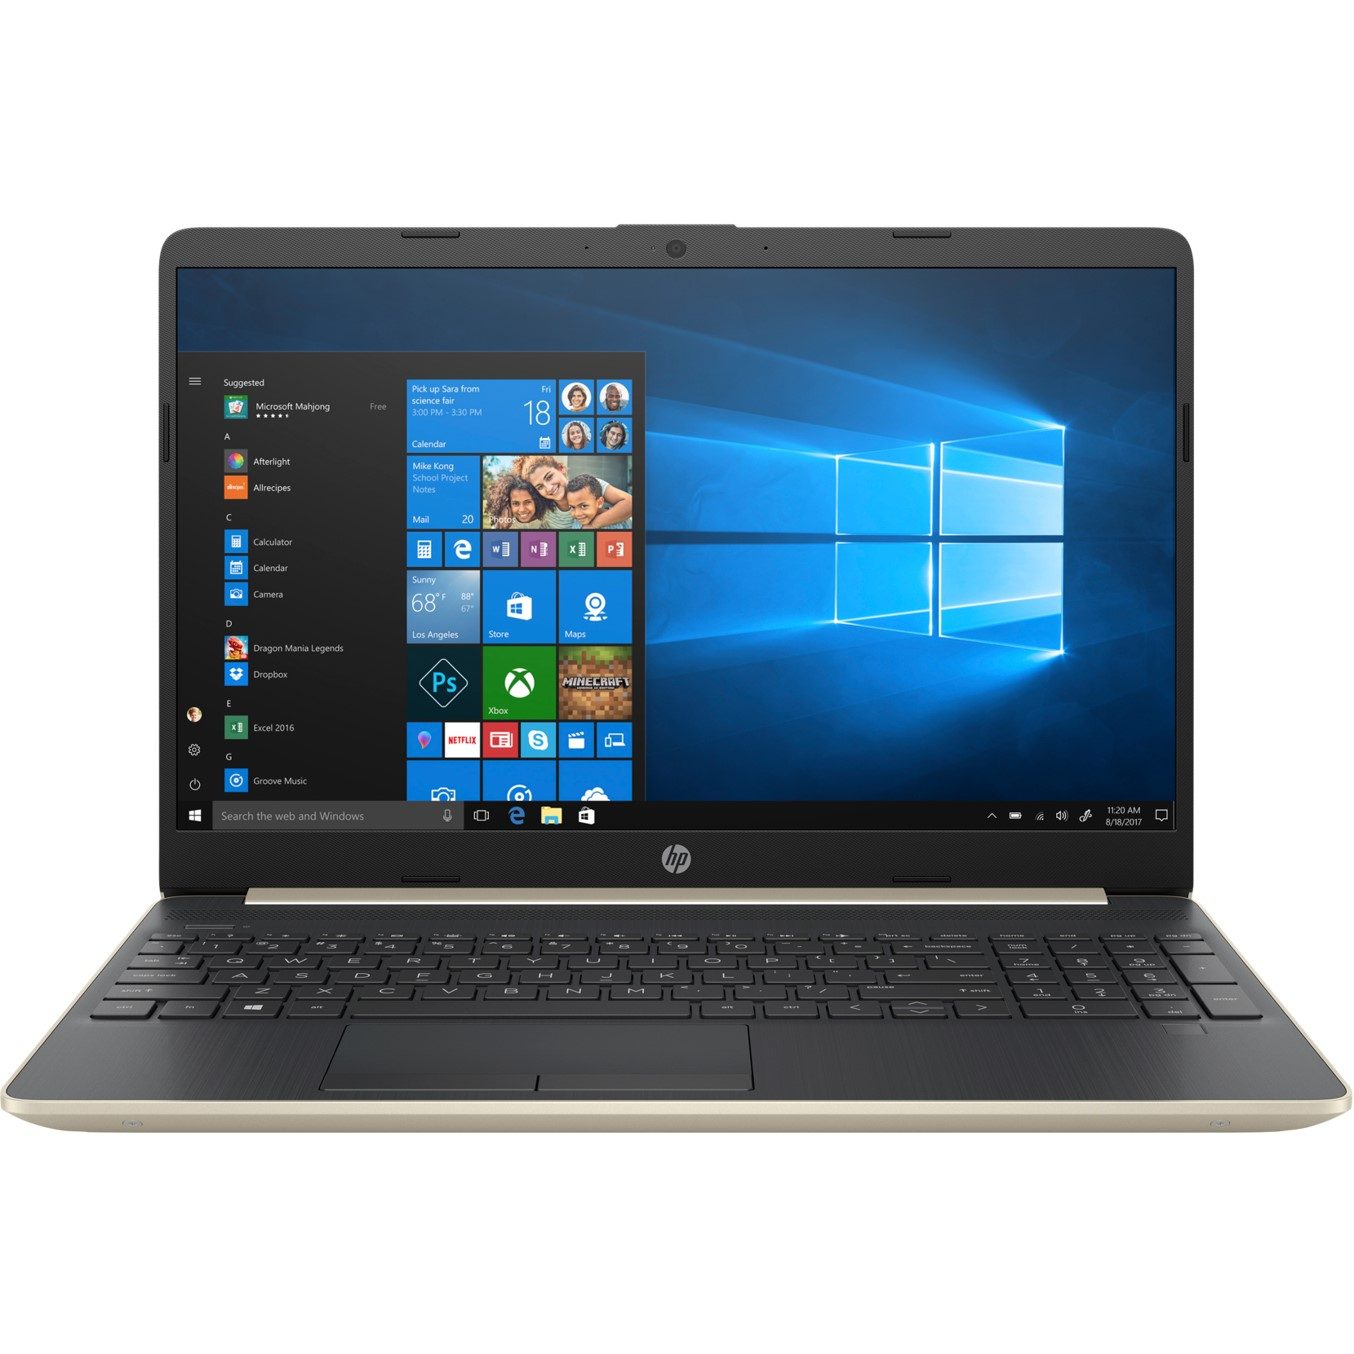 "PORTATIL HP NOTEBOOK 15-DW0028NS I3-7020U 15.6"" 4GB / SSD128GB / WIFI / BT / W10"